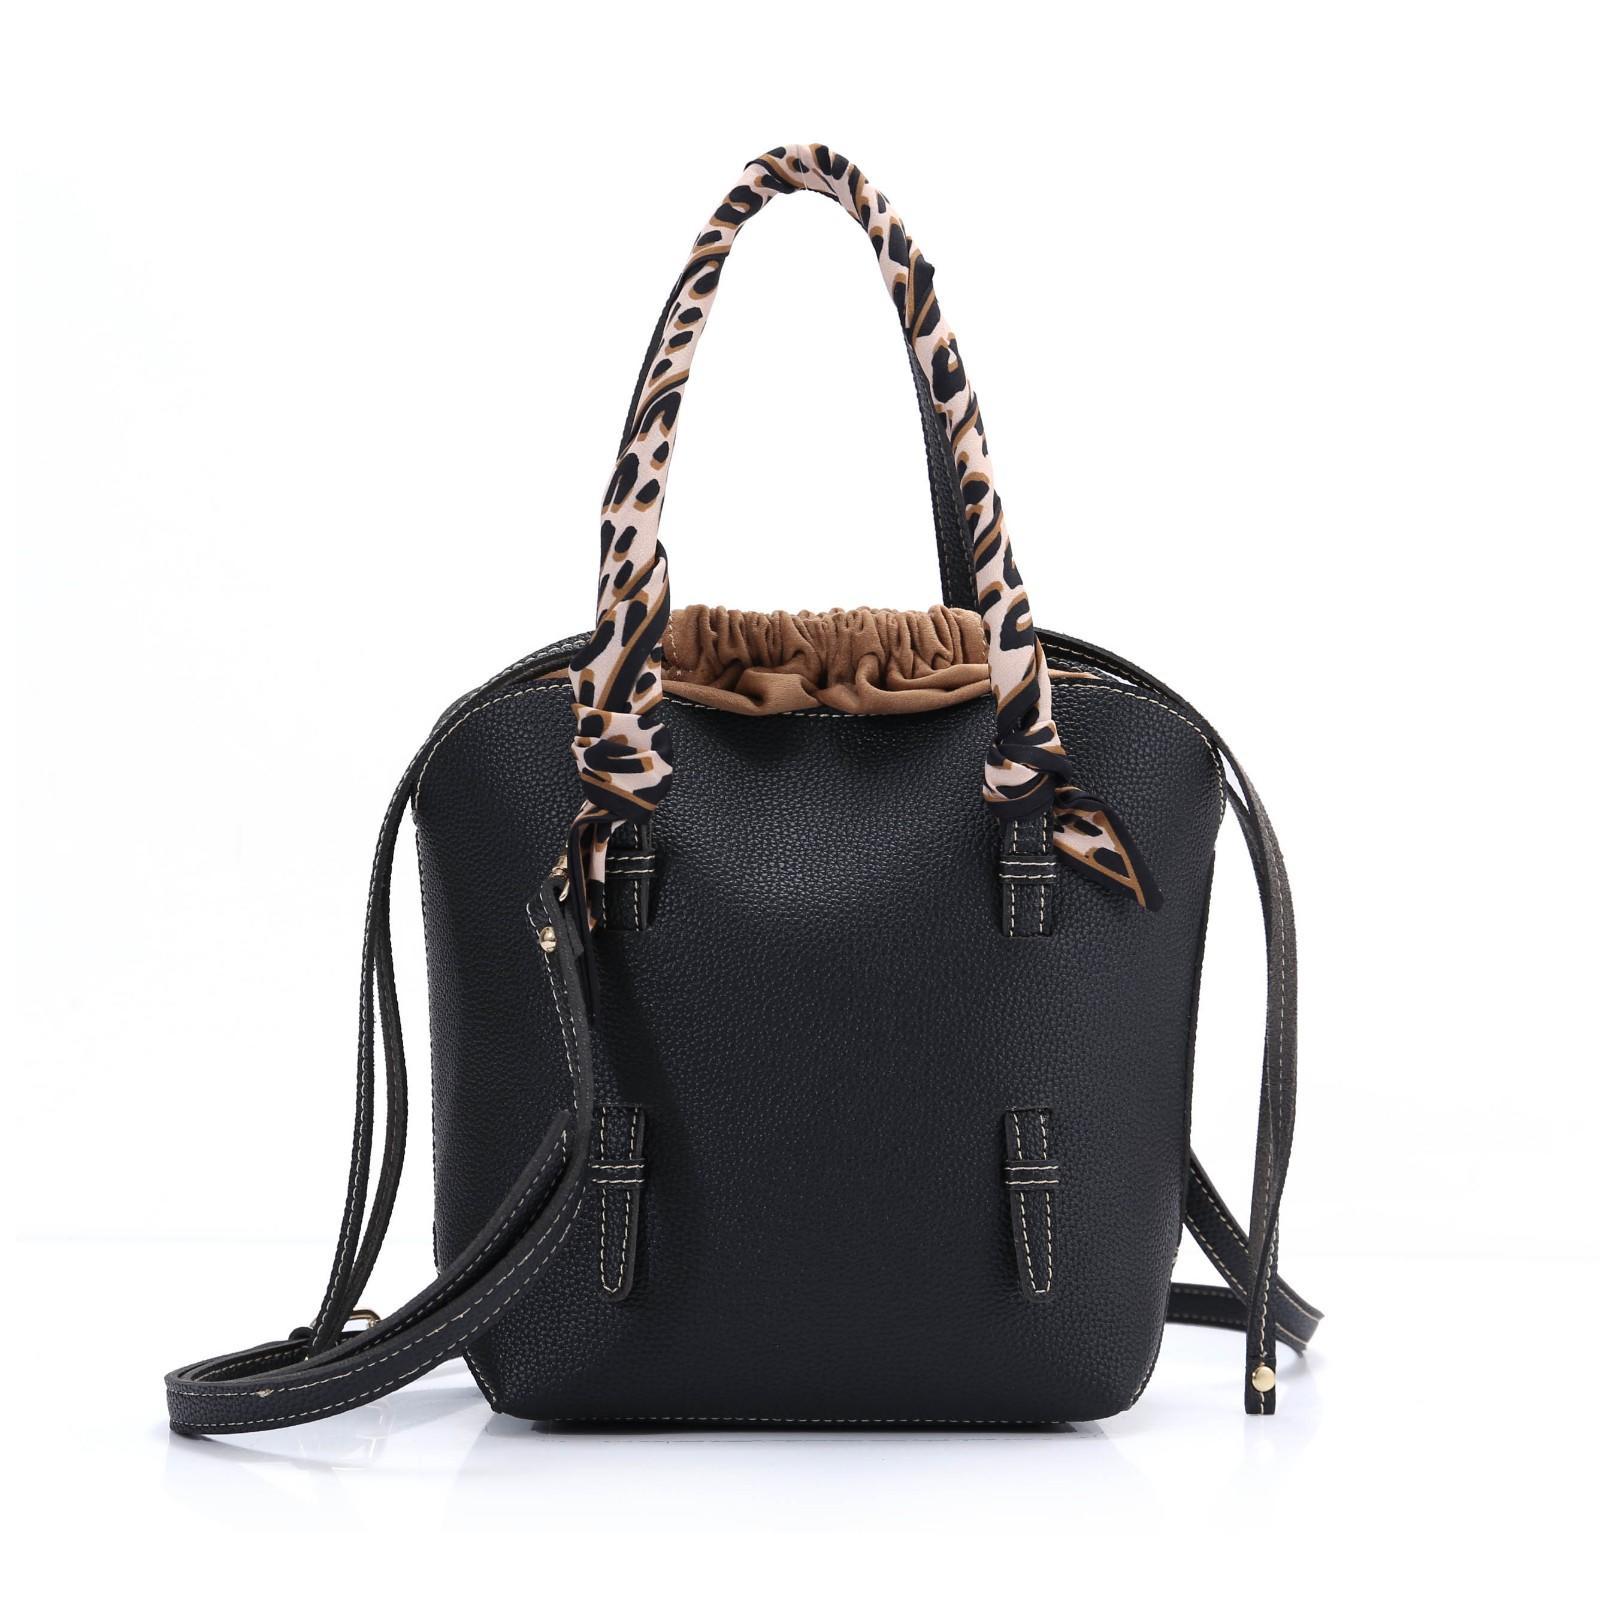 ANGEDANLIA box woven leather bag manufacturer for school-1